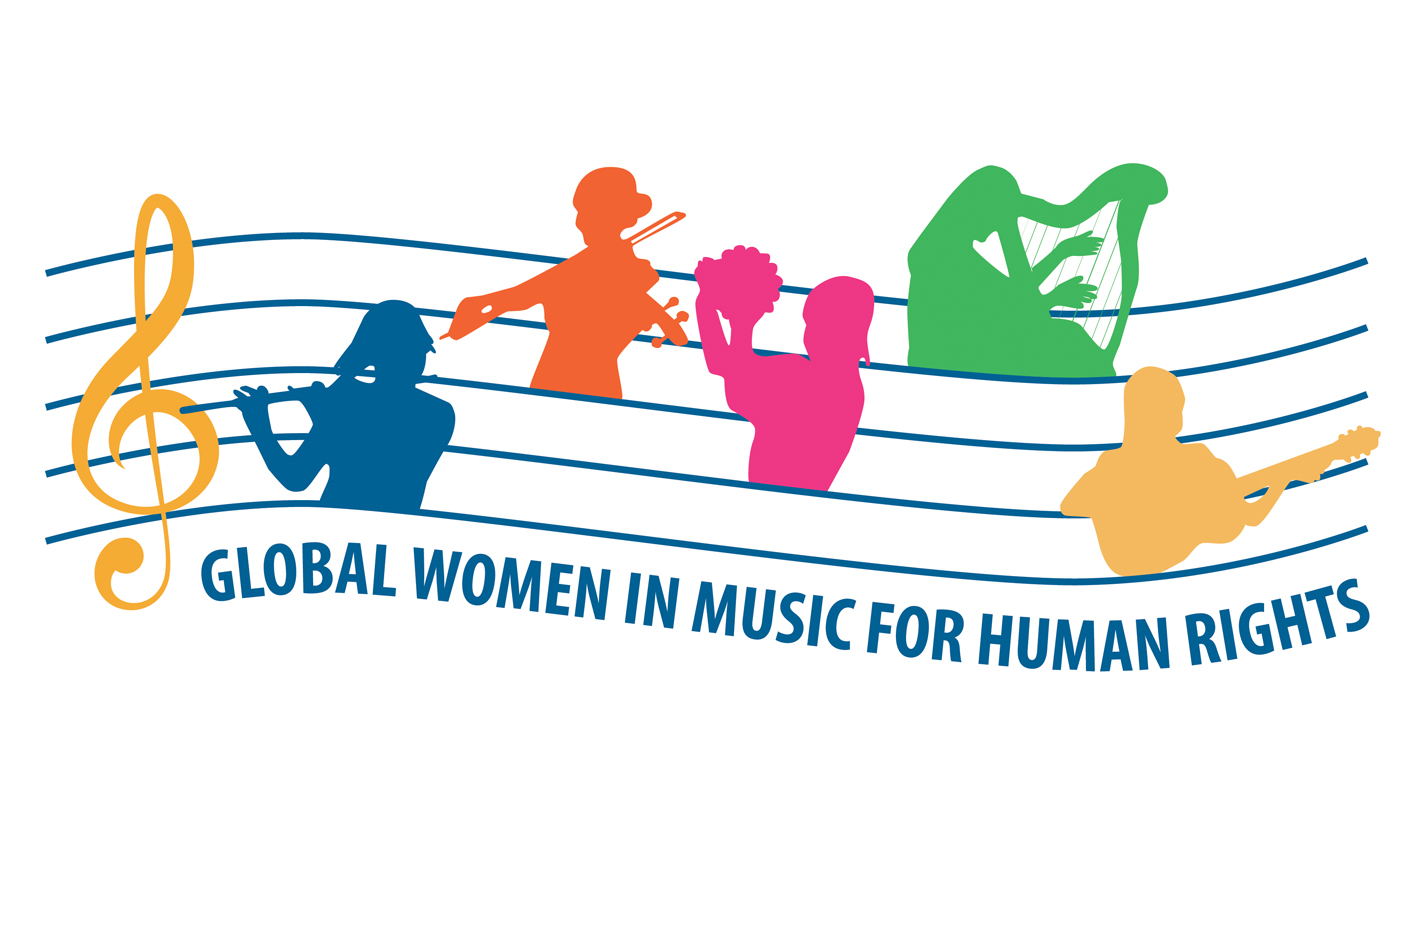 Global Women in Music for Human Rights